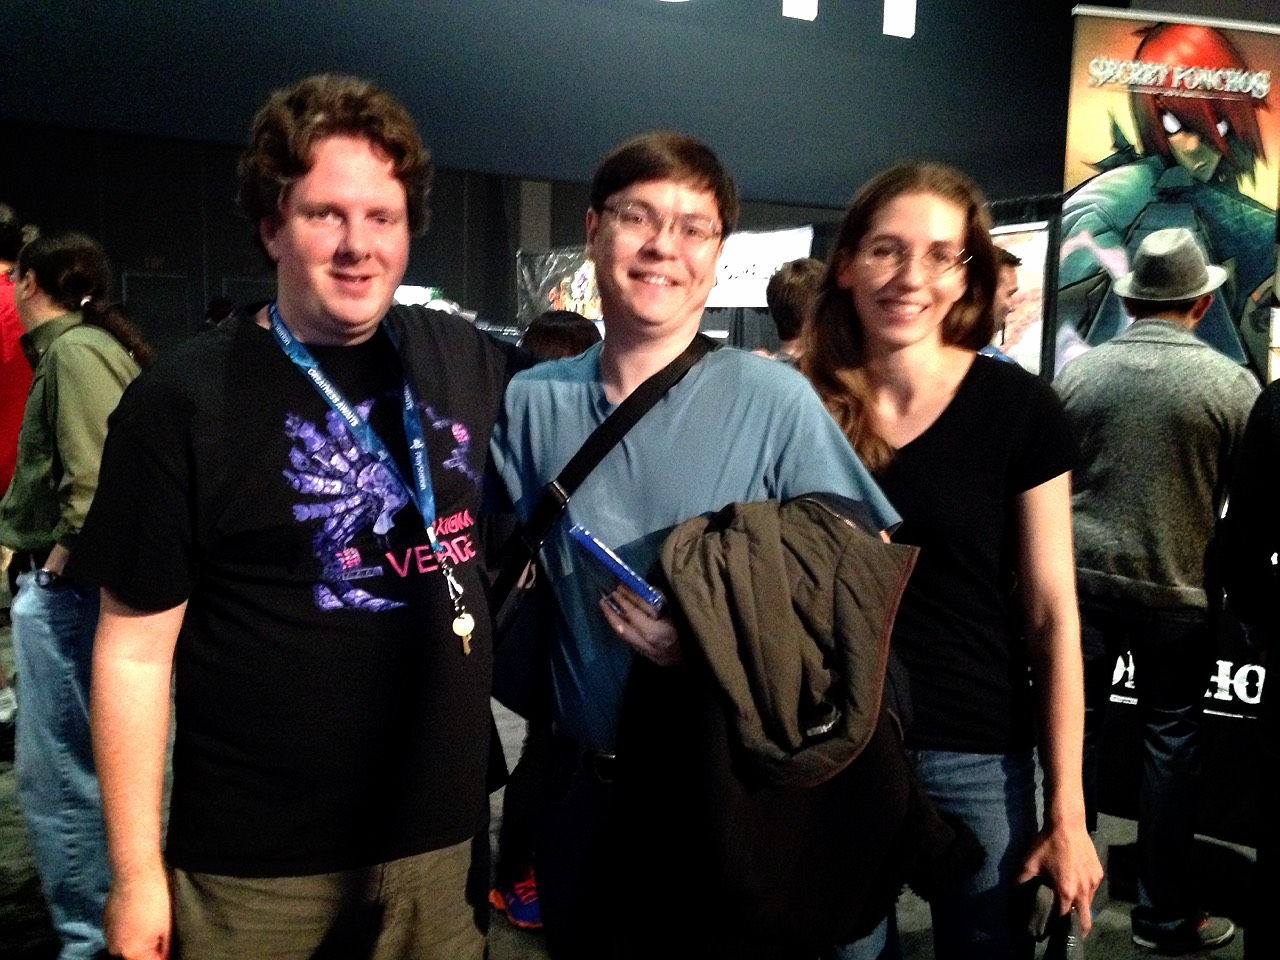 Here I am with Dead Dodrill (creator of Dust:  An Elysian Tail) and his wife.